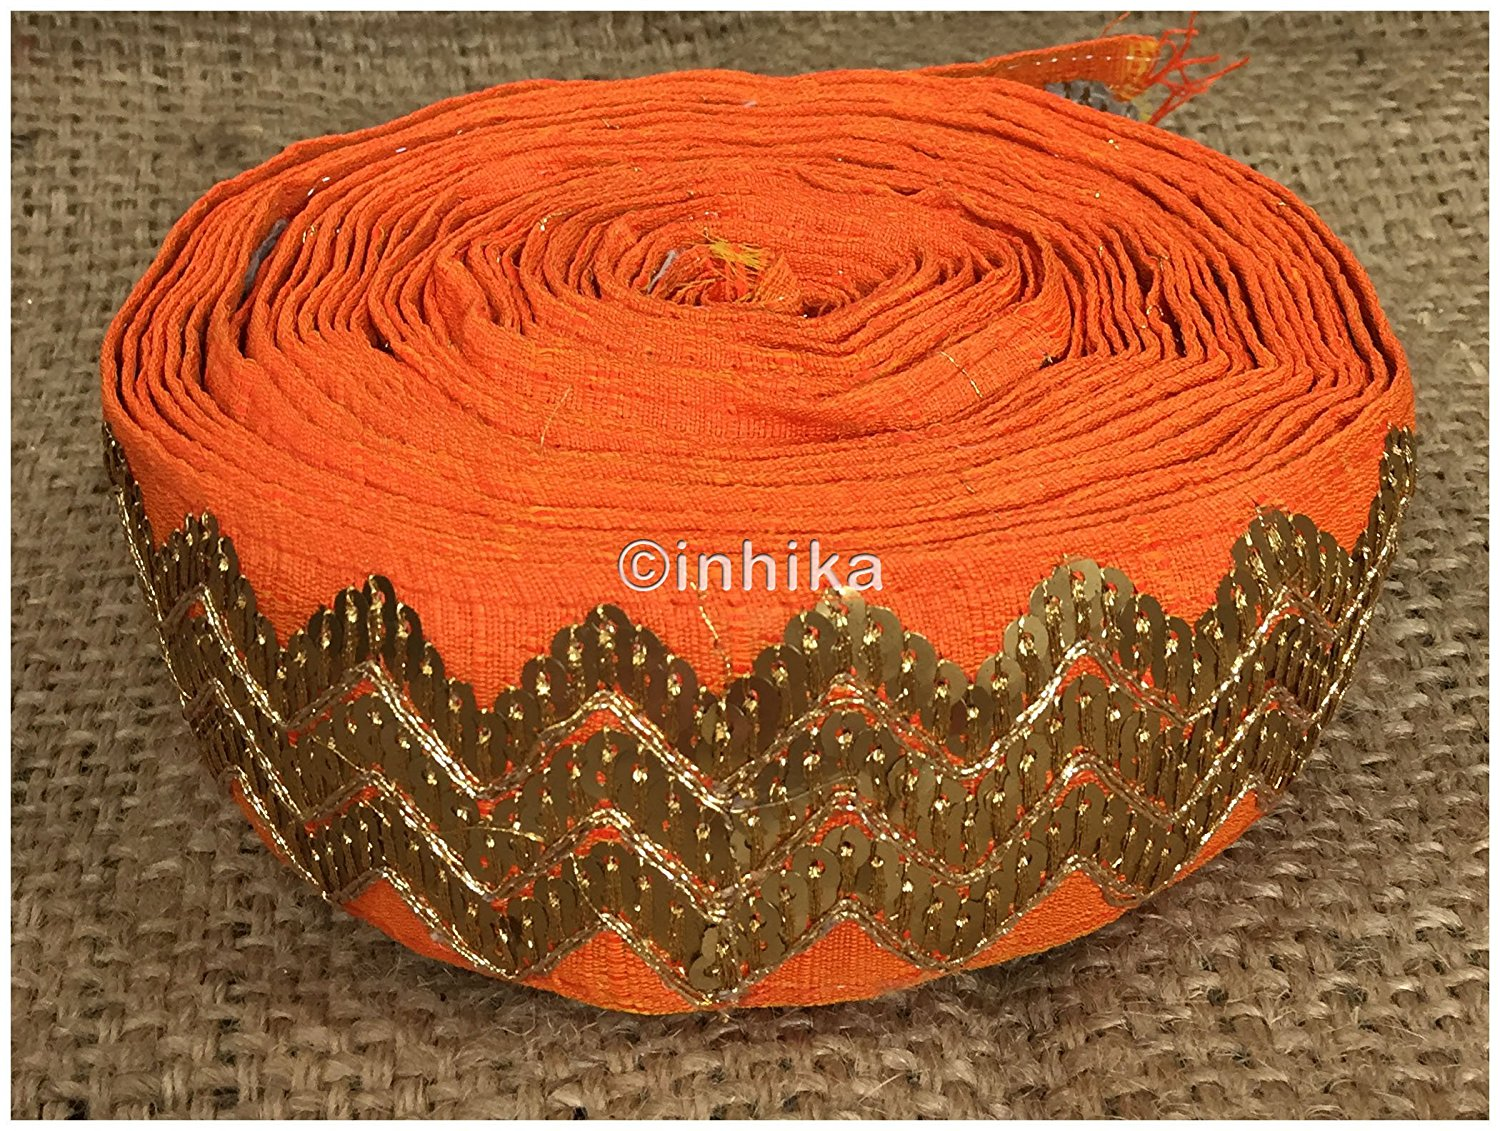 lace trim fabric sequin appliques and trims suppliers Orange, Embroidery, Sequins, 3 Inch Wide material Cotton Mix, Dupion